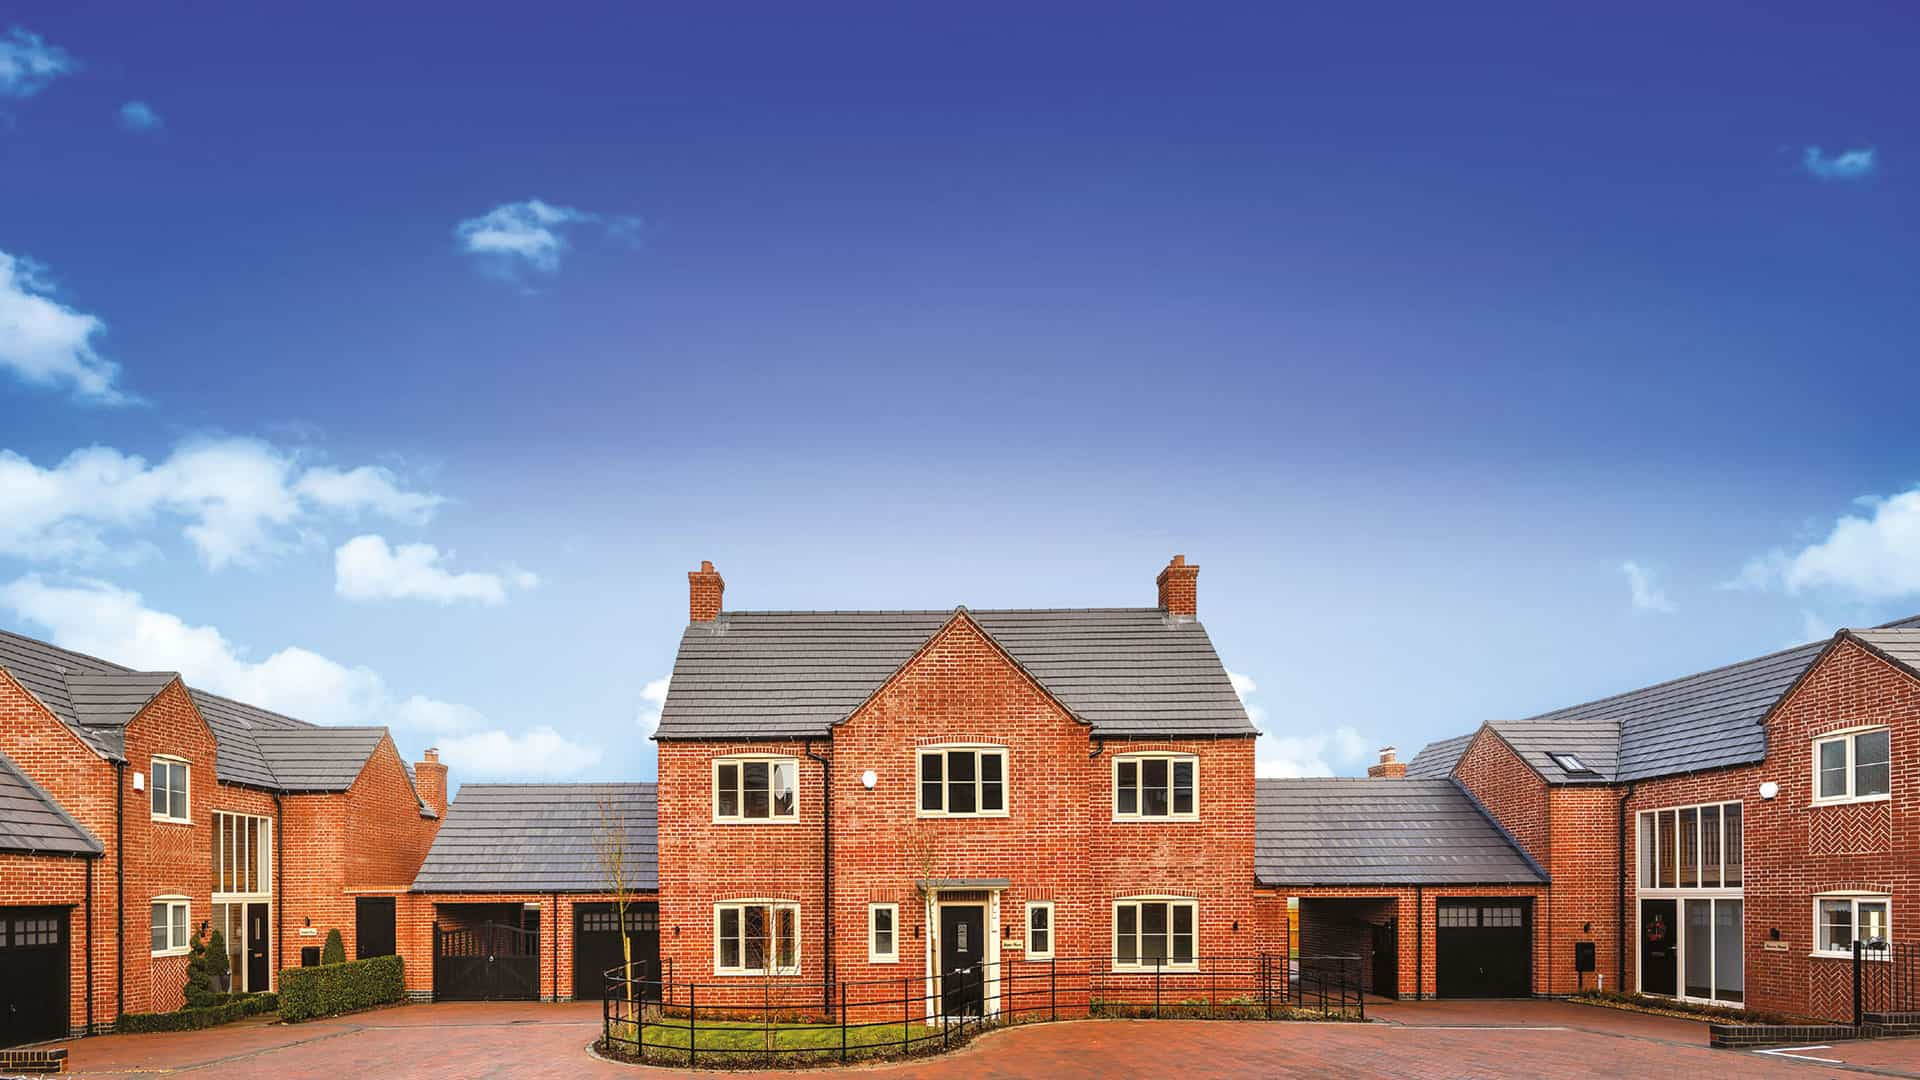 North Kilworth development leads to first UK Property Award Win